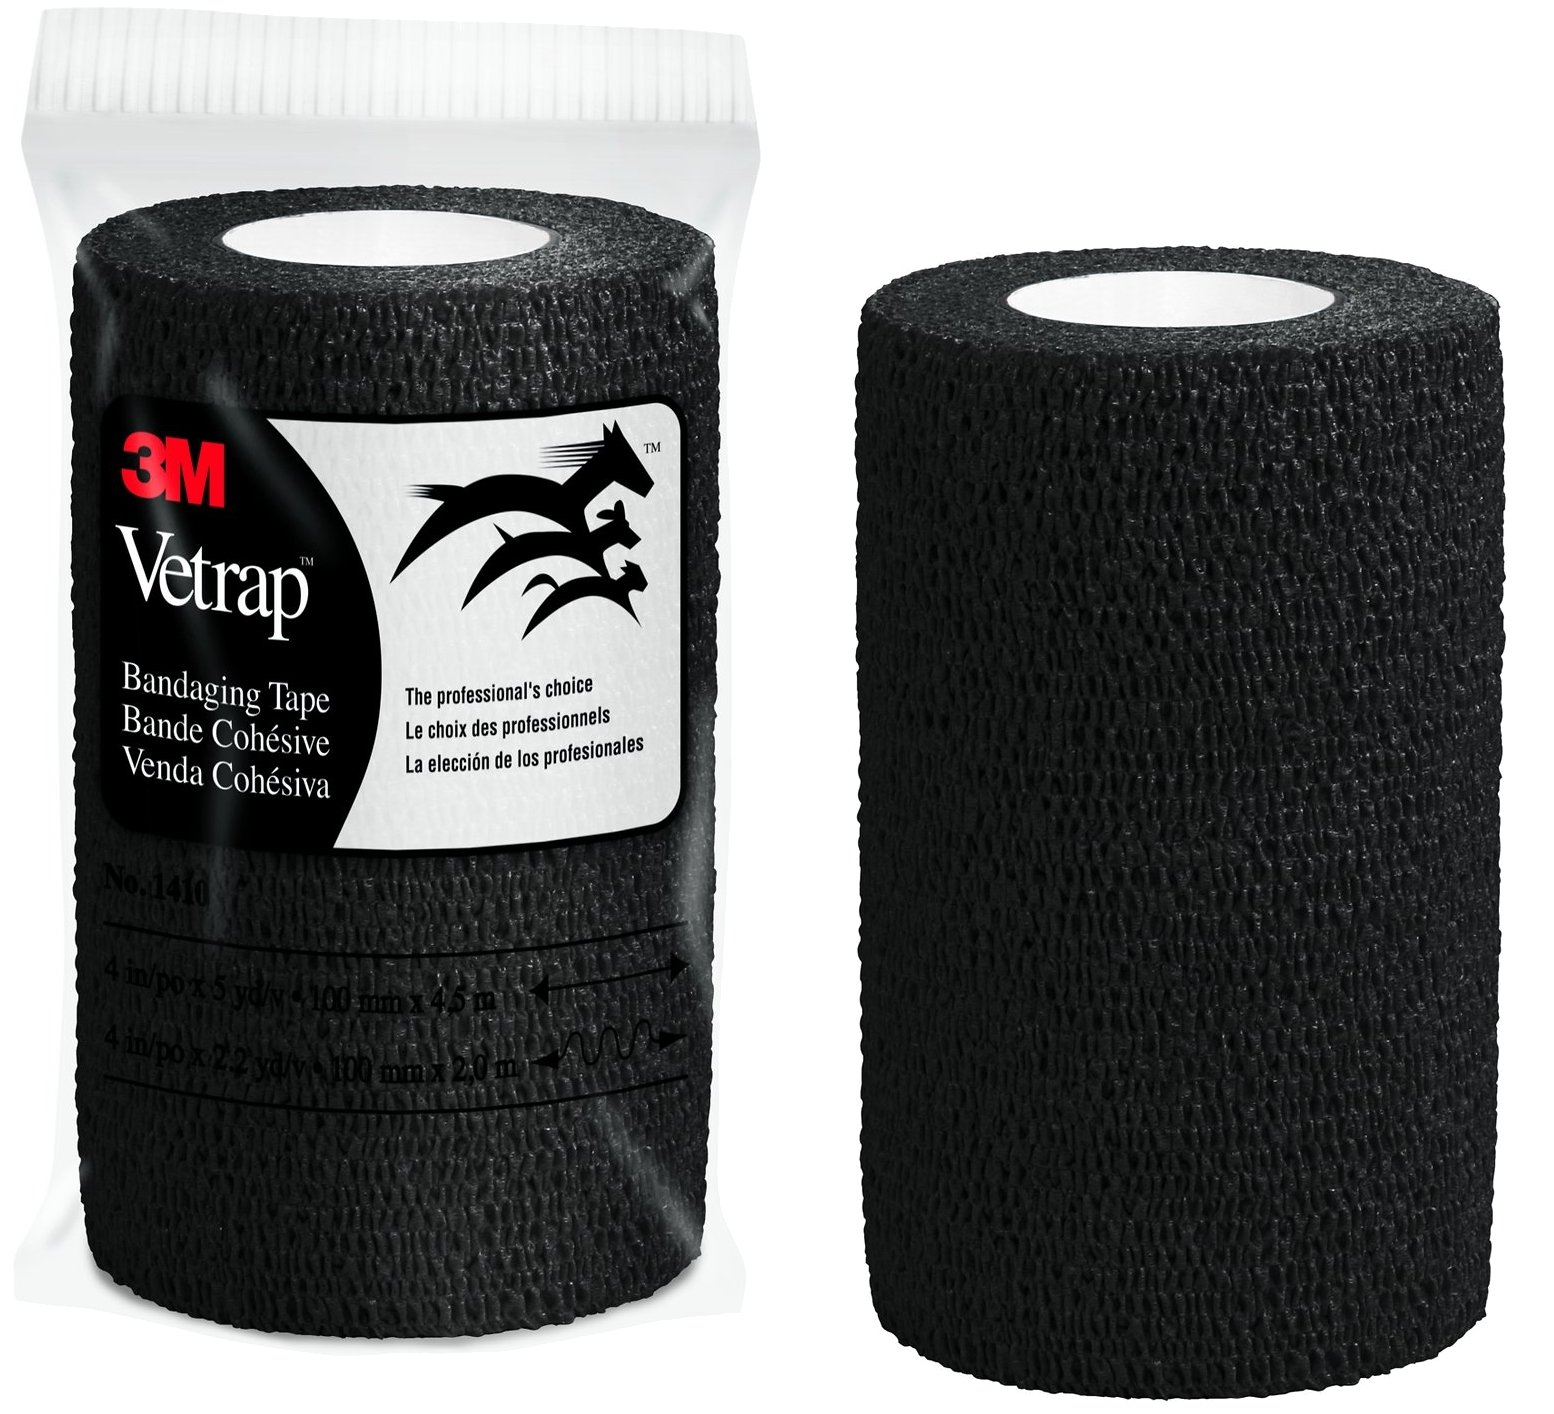 3M Vetrap 4'' Bandaging Tape, 4''x 5 Yards, Black (100) by 3M